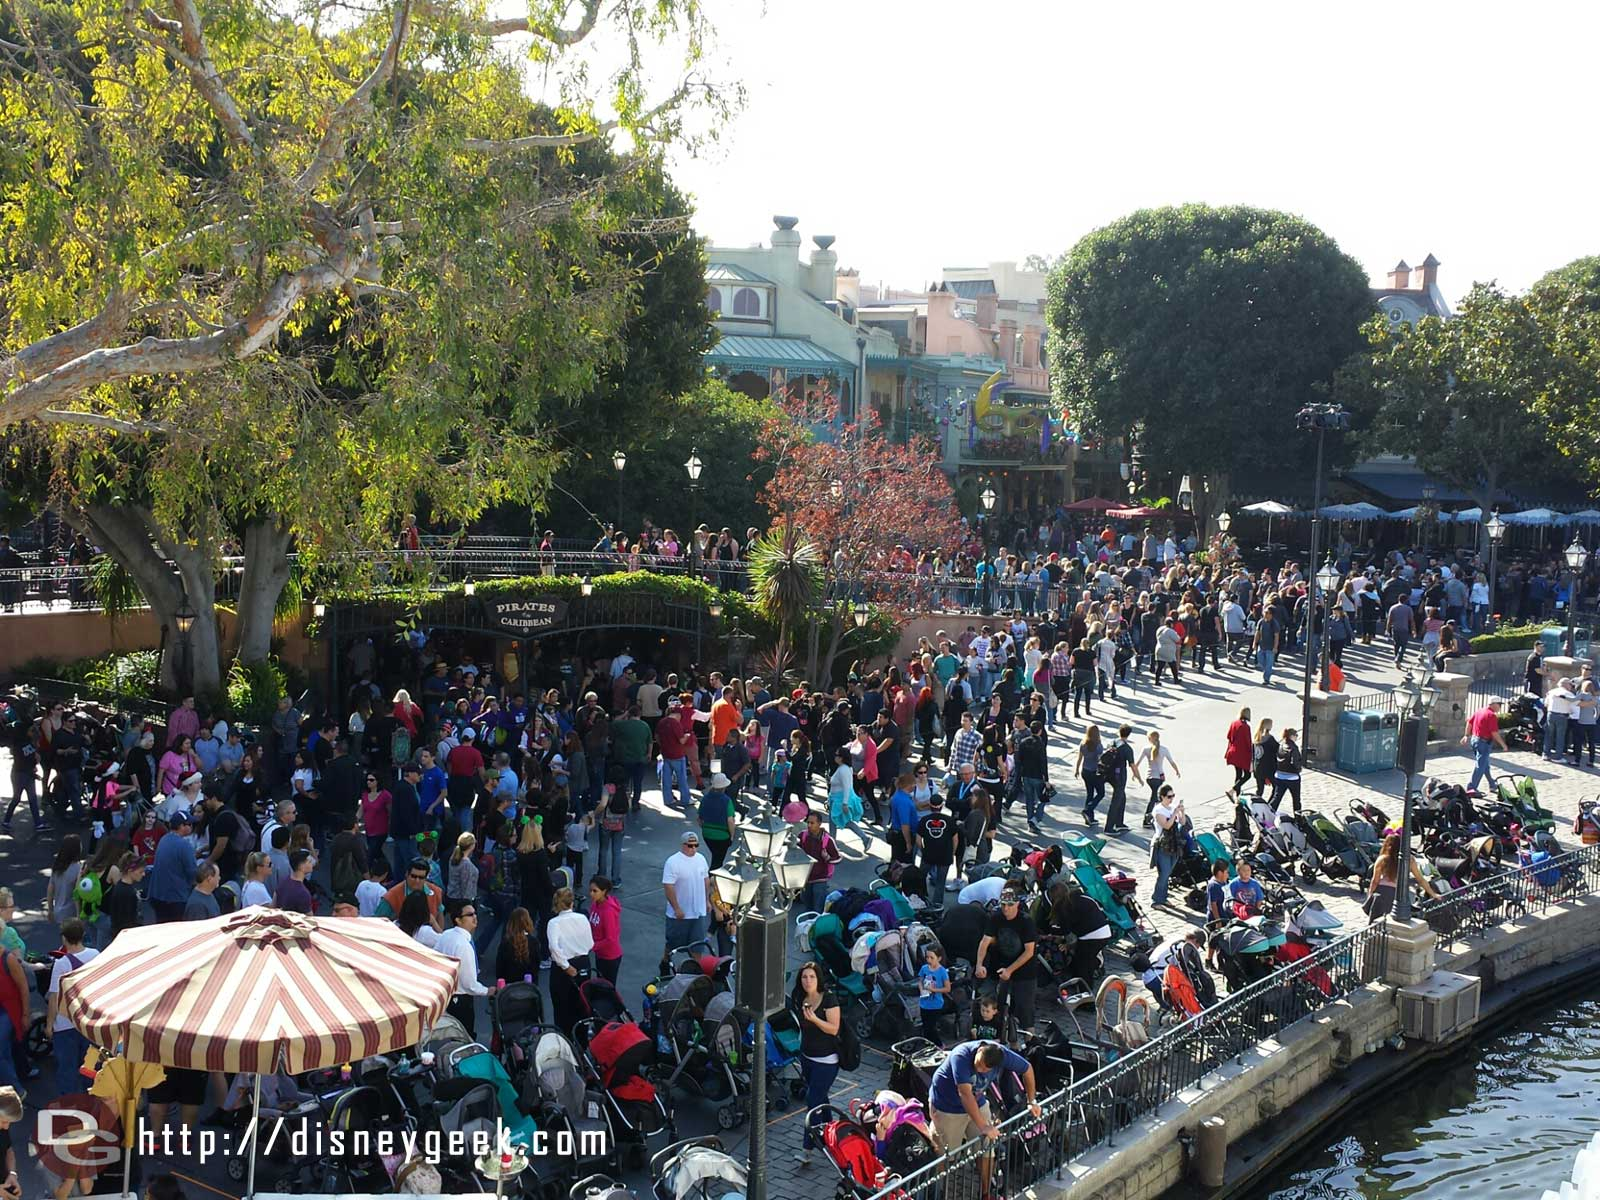 New Orleans Square from the Mark Twain #Disneyland